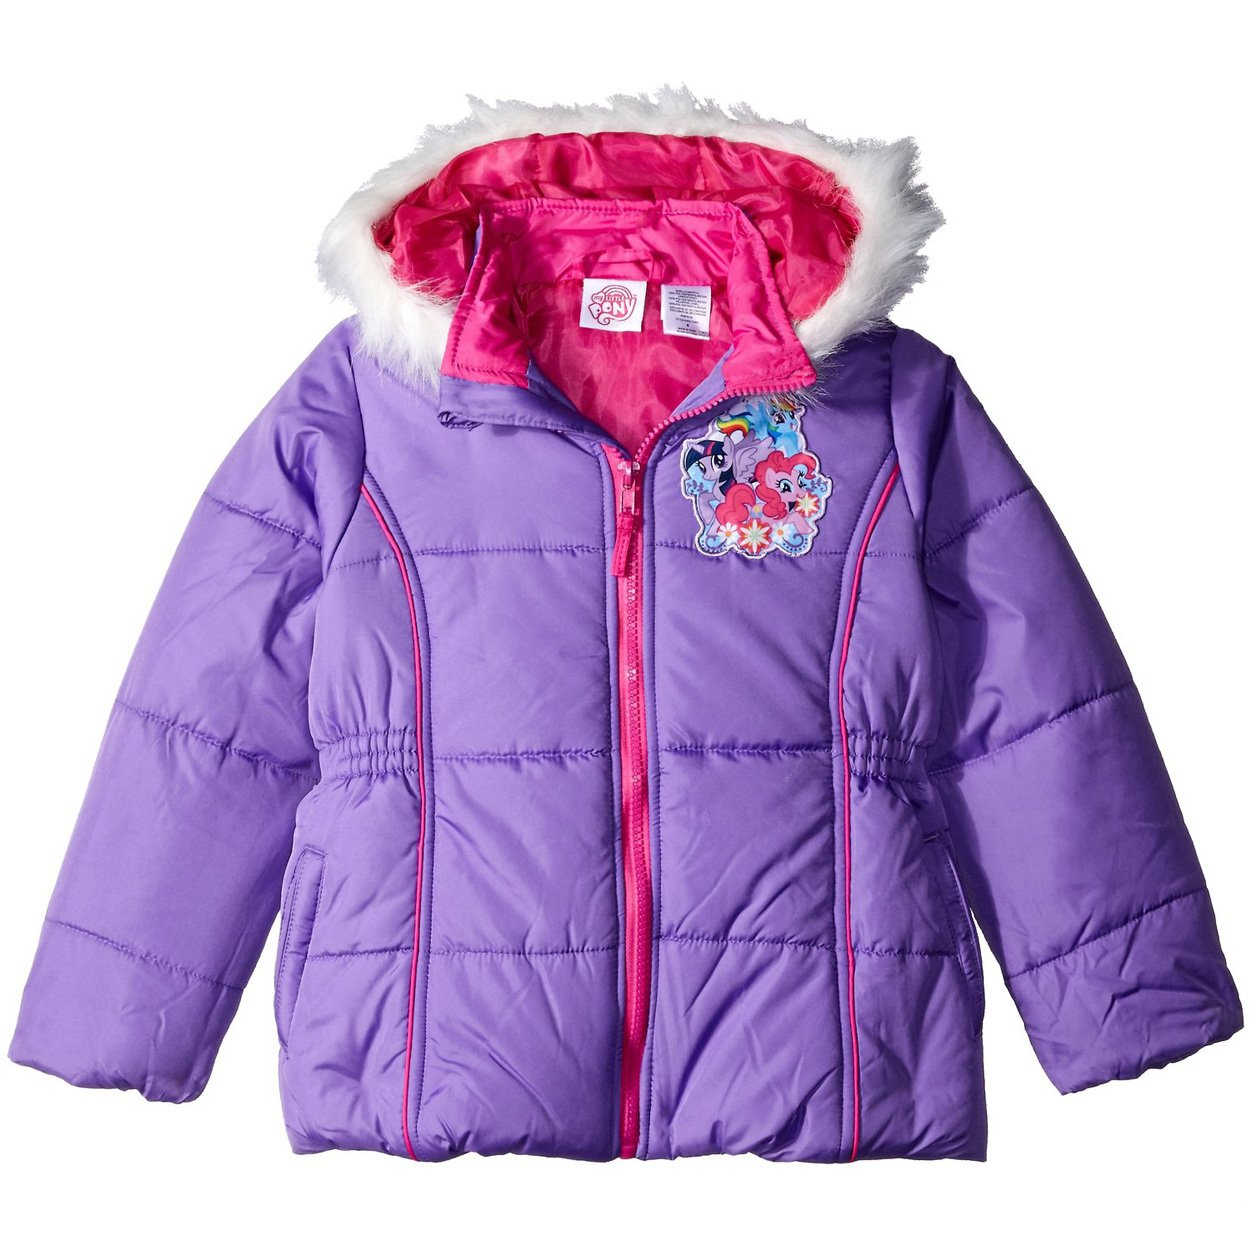 89b03887e Amazon.com  My Little Pony Little Girls Puffer Coat Jacket (4